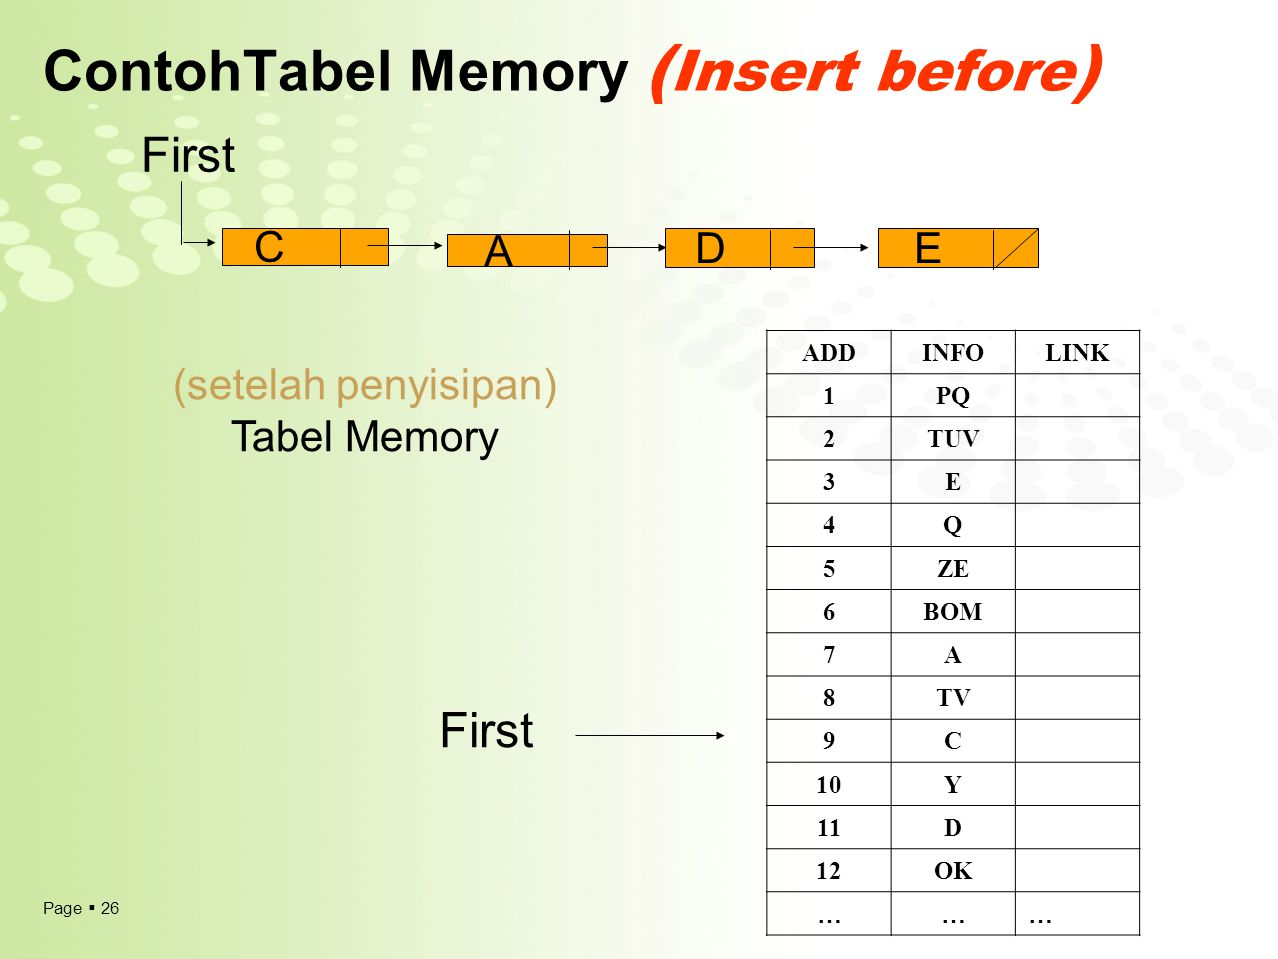 Page  26 ContohTabel Memory ( Insert before ) (setelah penyisipan) Tabel Memory First A C DE ADDINFOLINK 1PQ 2TUV 3E 4Q 5ZE 6BOM 7A 8TV 9C 10Y 11D 12